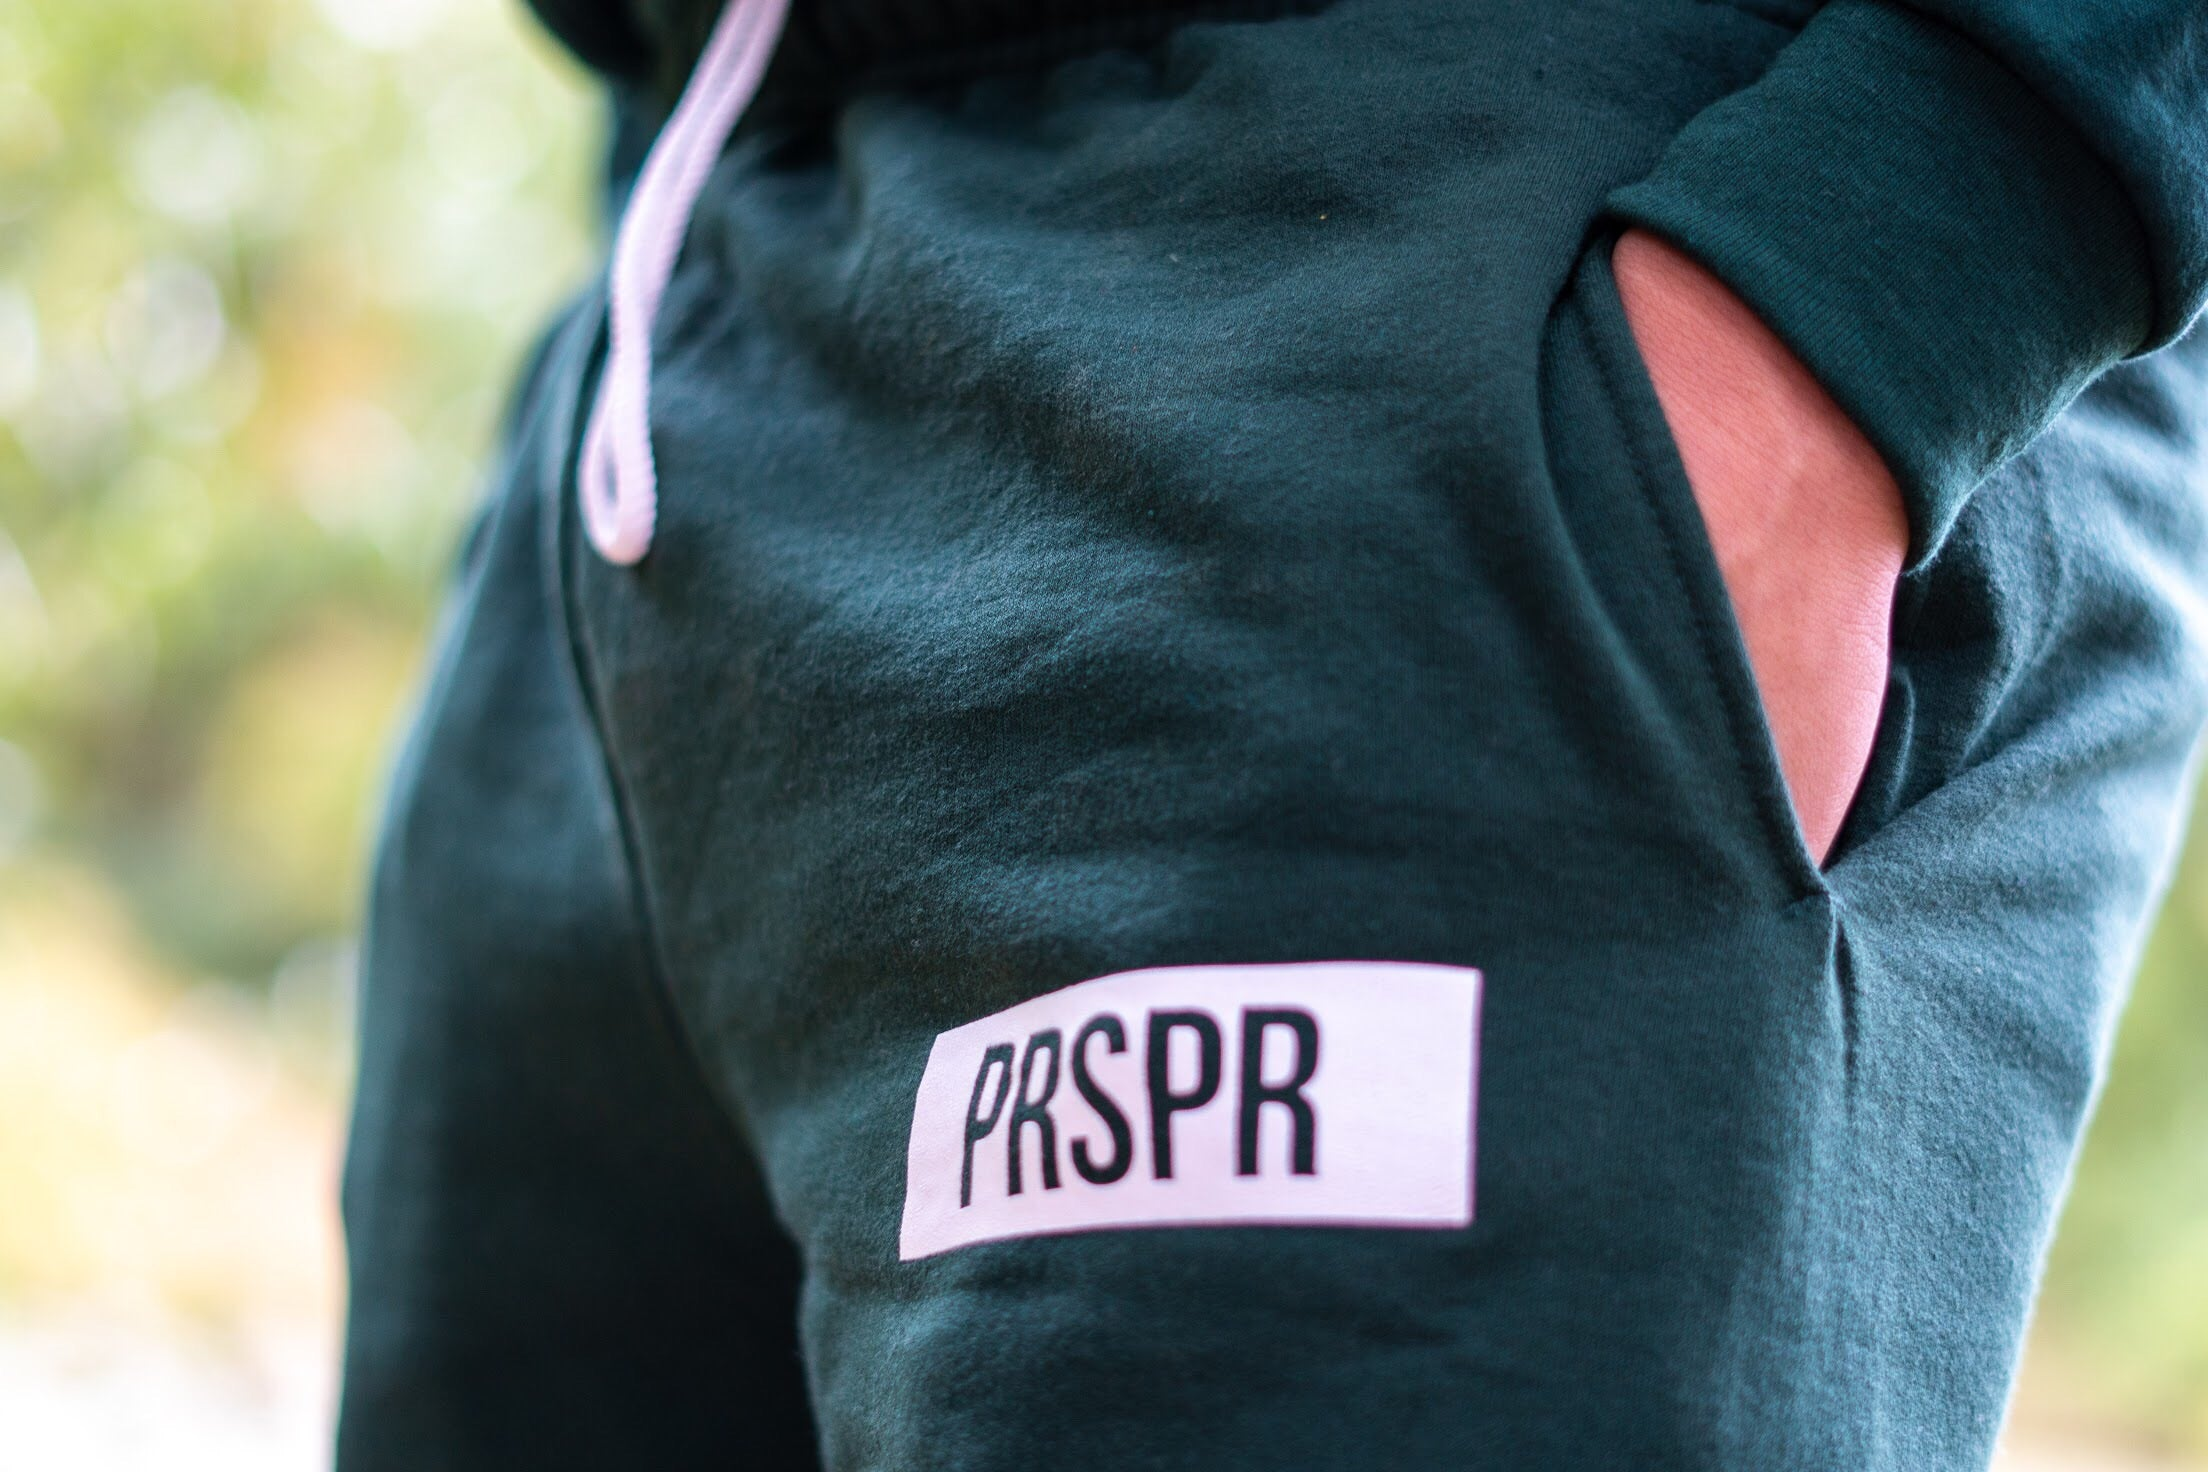 PRSPR Sweatpants - Grind x Grow x Prosper Clothing Co.